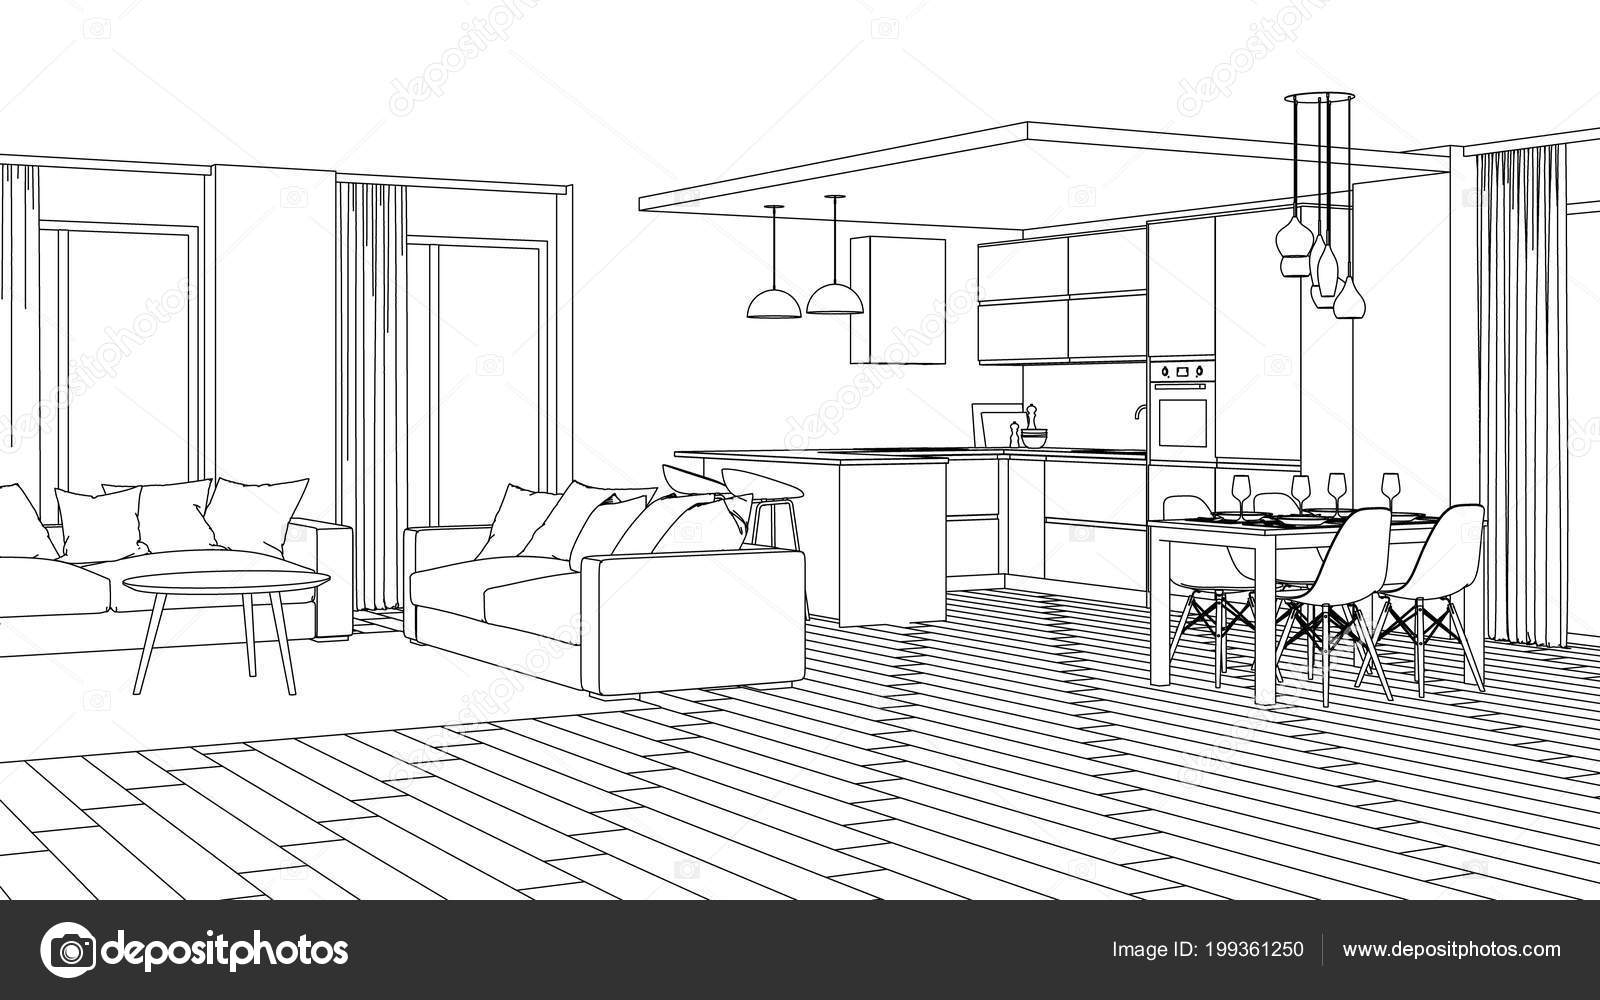 Modern house interior design project sketch rendering stock photo